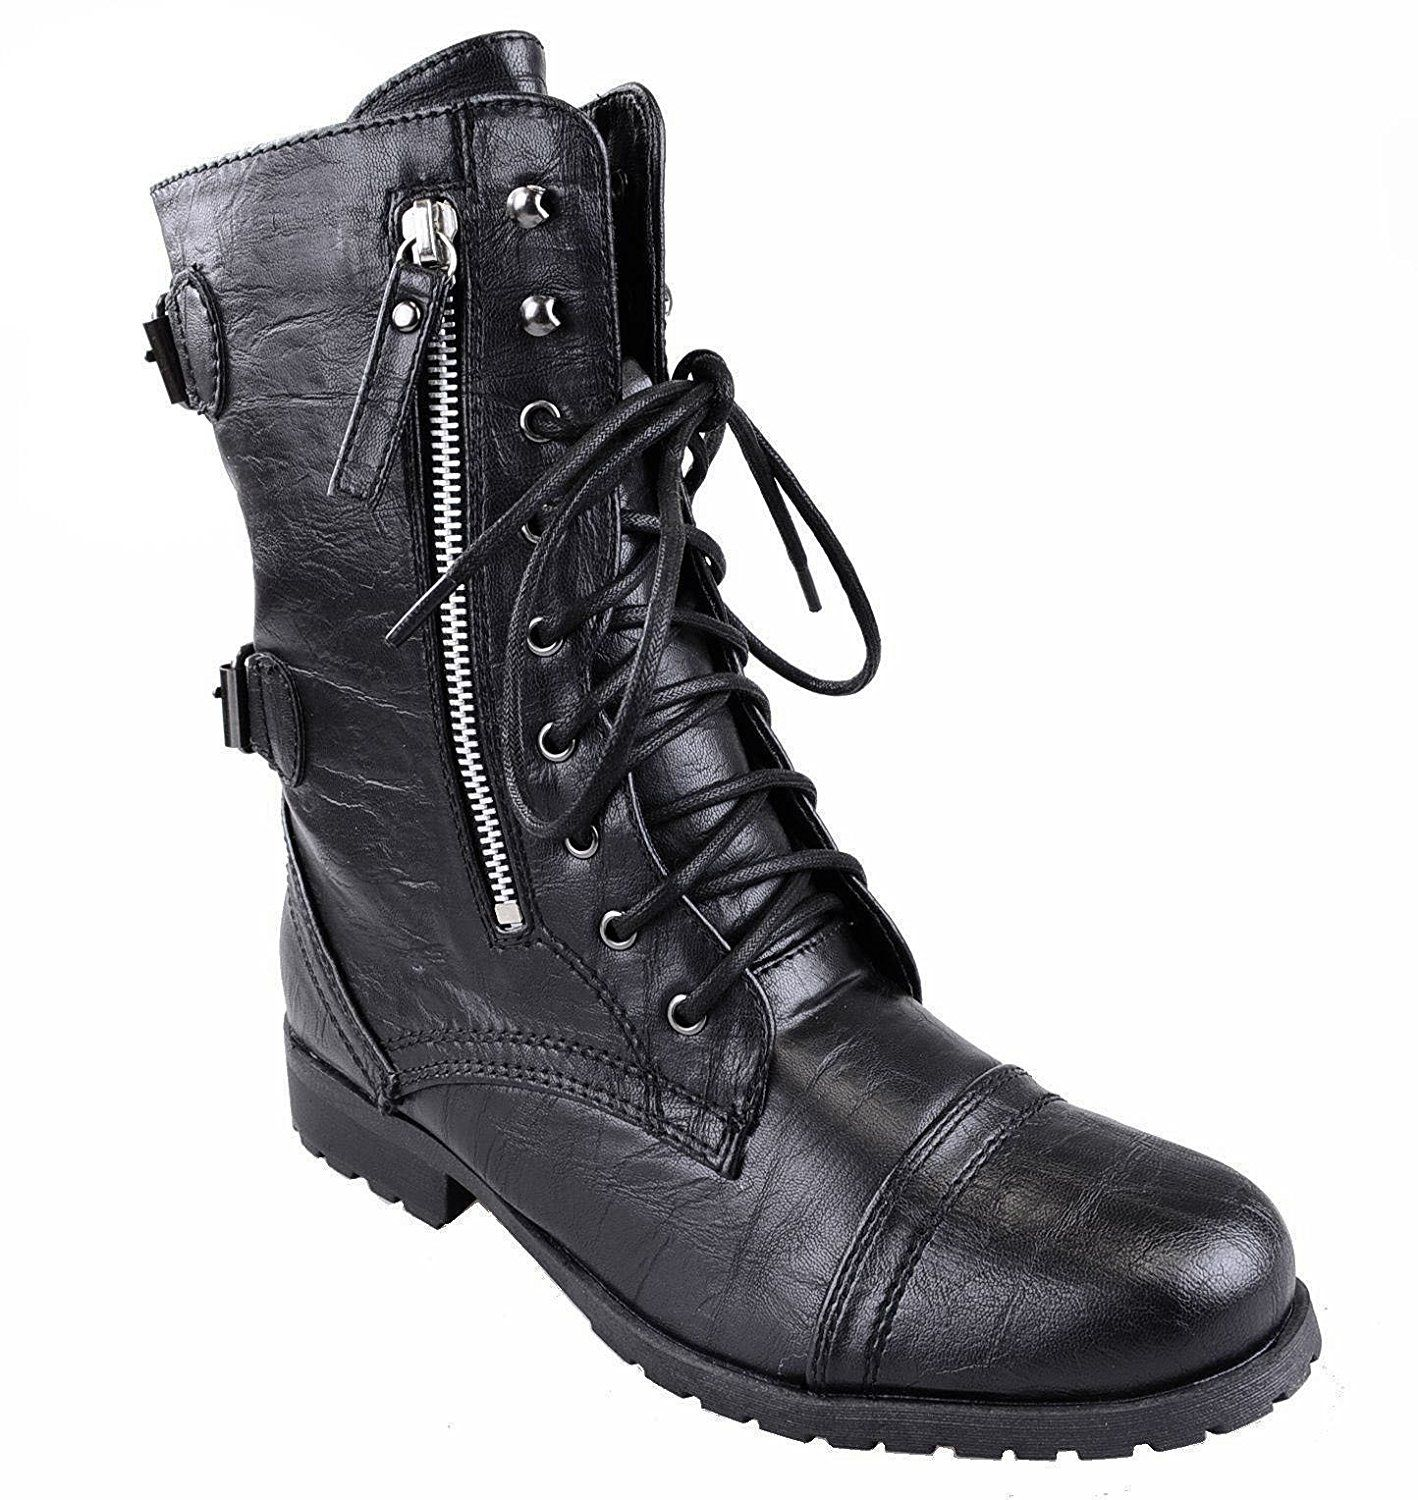 Womens Army Combat Lace Up Zip Grunge Military Biker Punk Goth Ankle Boots Shoes Size